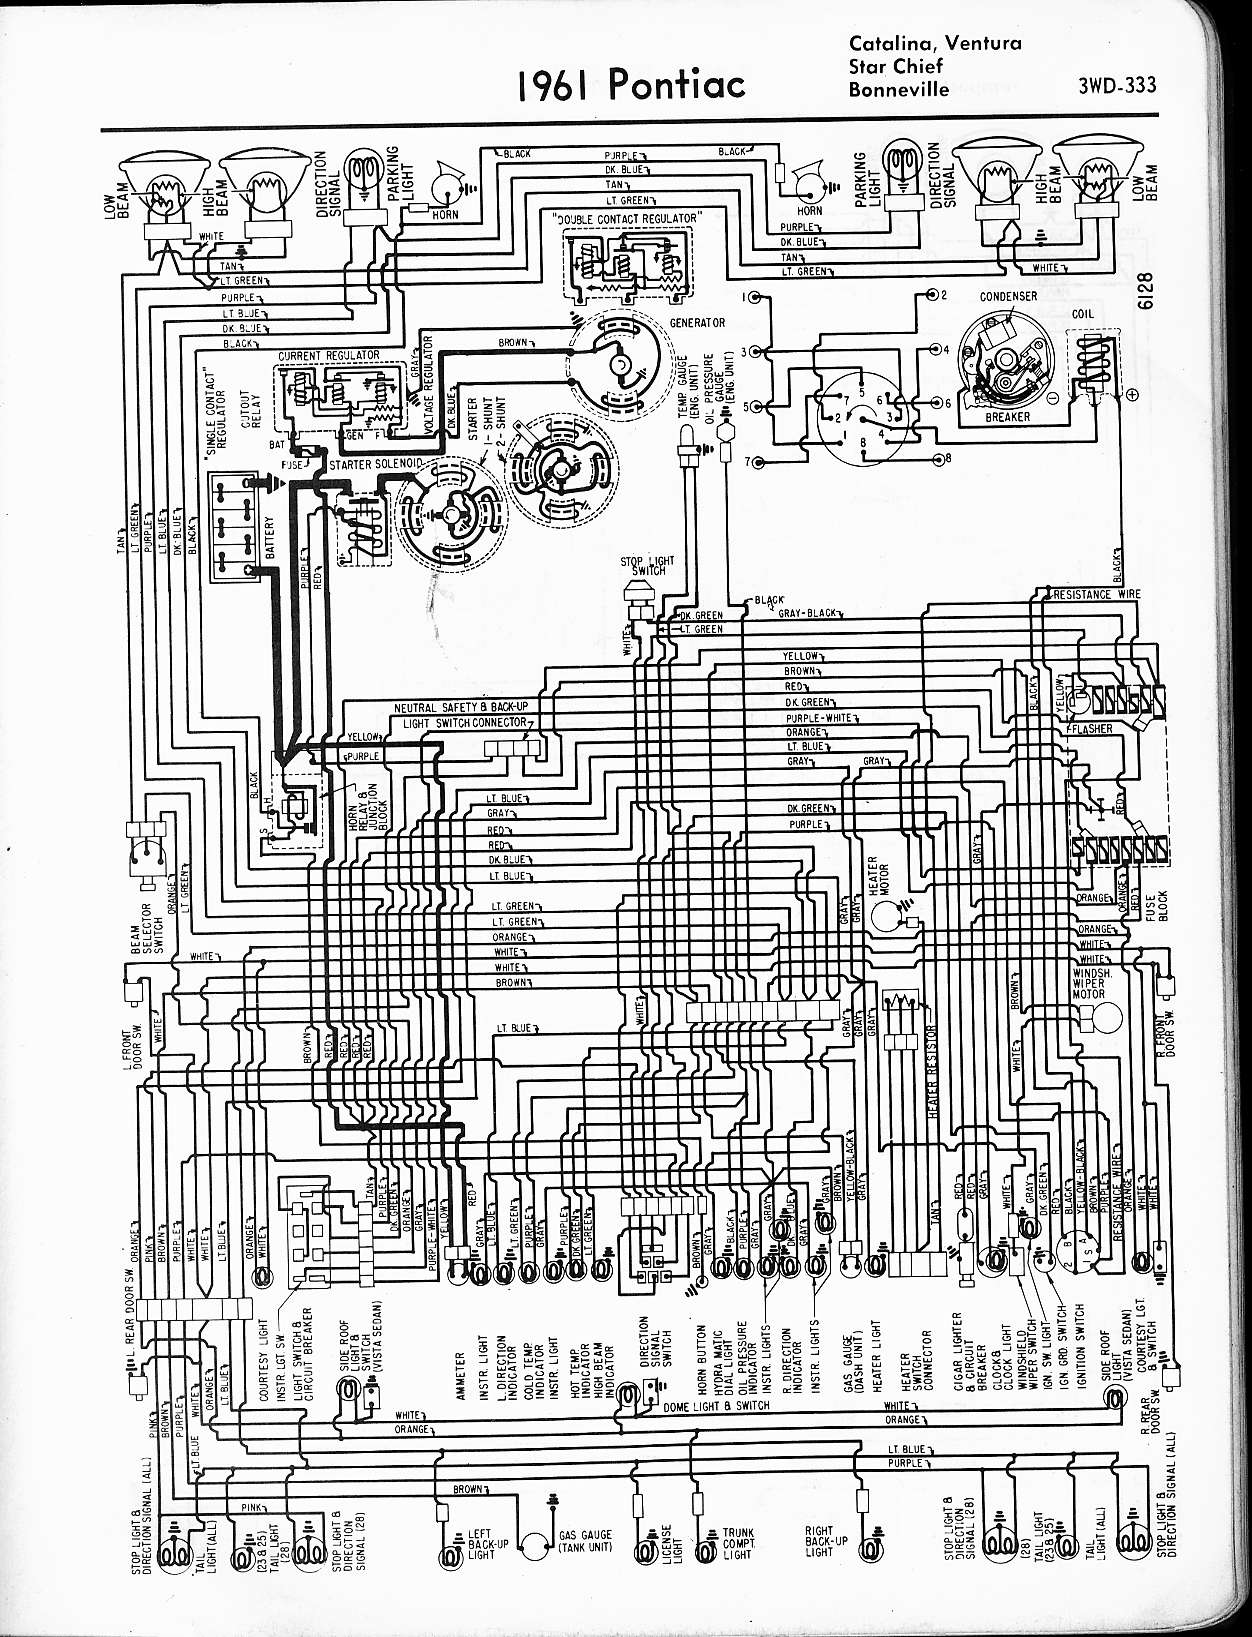 wallace racing wiring diagrams rh wallaceracing com 1999 Pontiac Bonneville Wiring-Diagram 1967 Pontiac GTO Wiring-Diagram